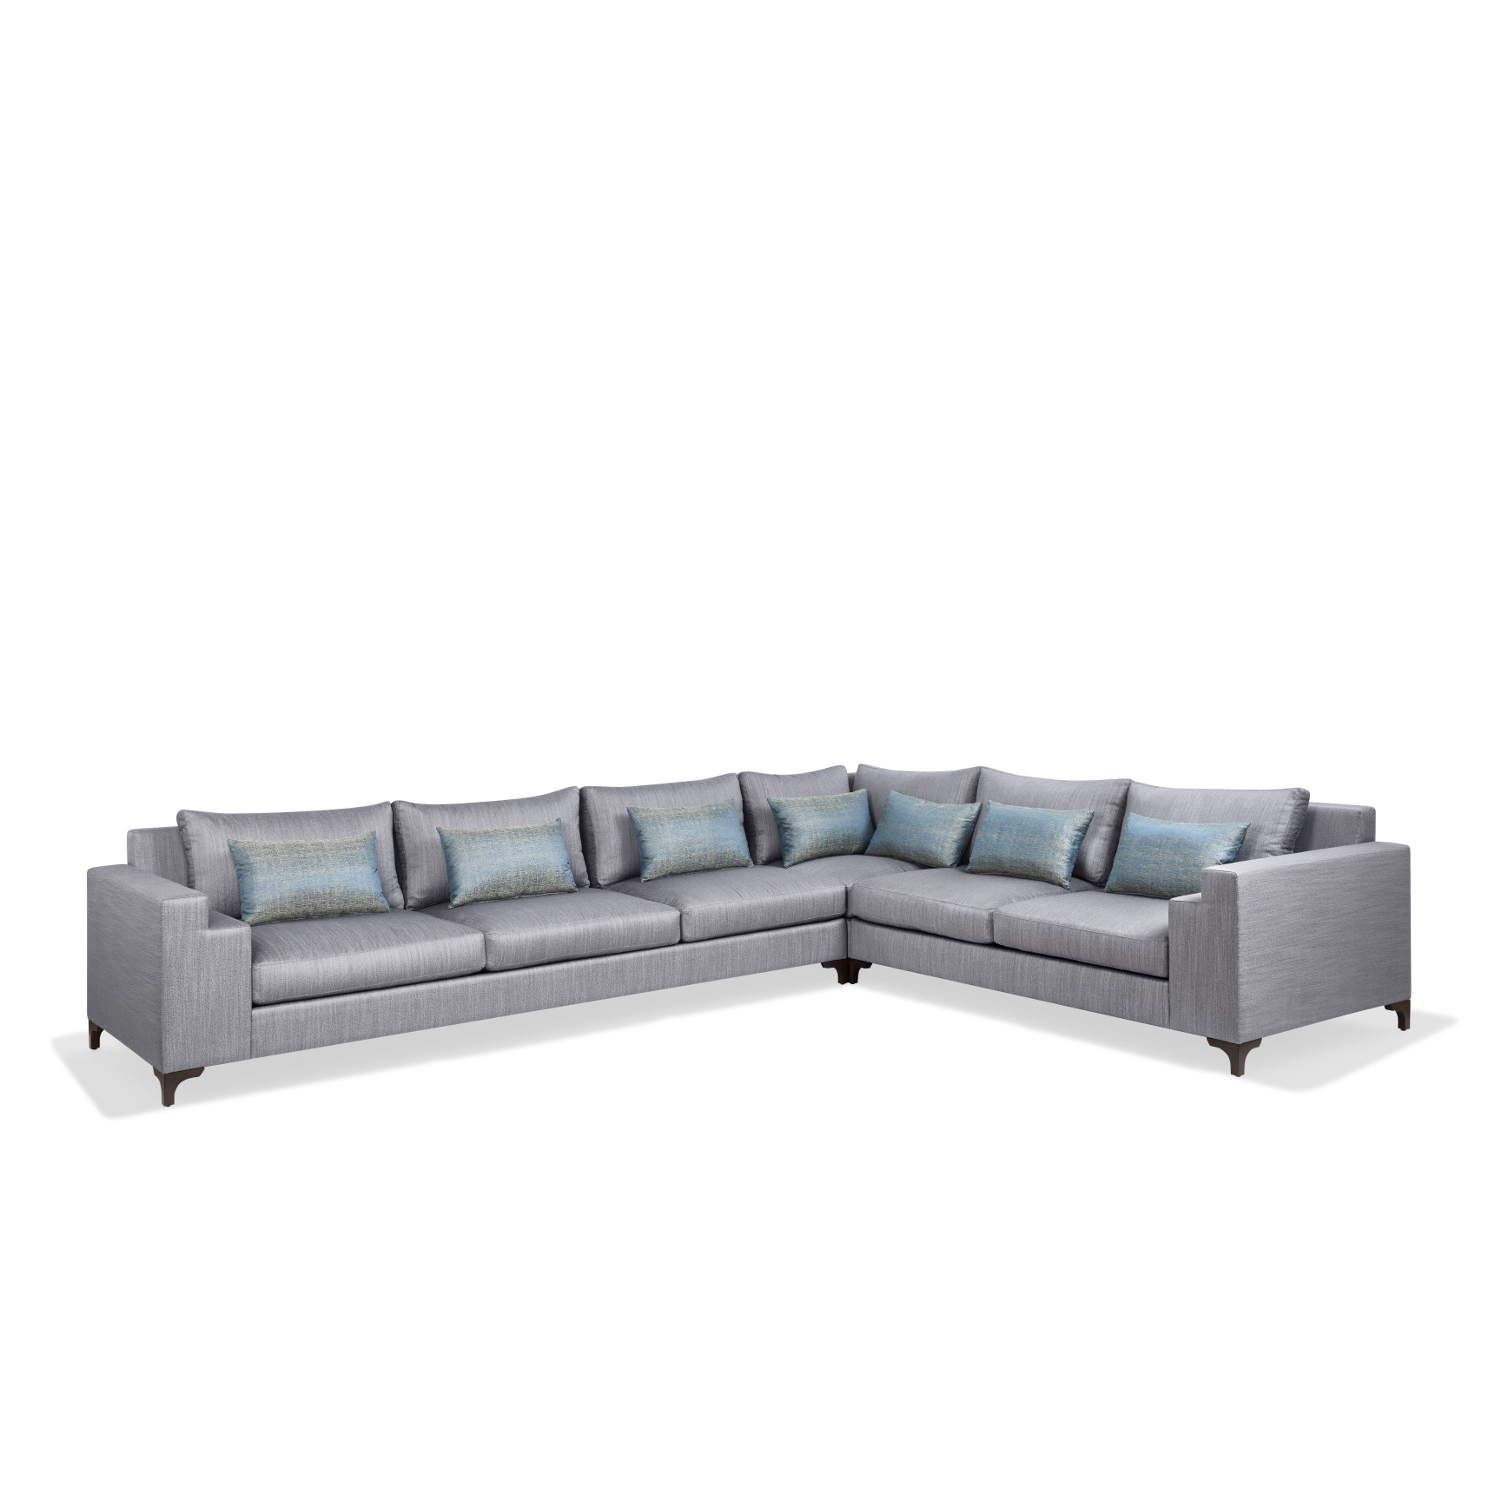 SavanNah - Modular sofa